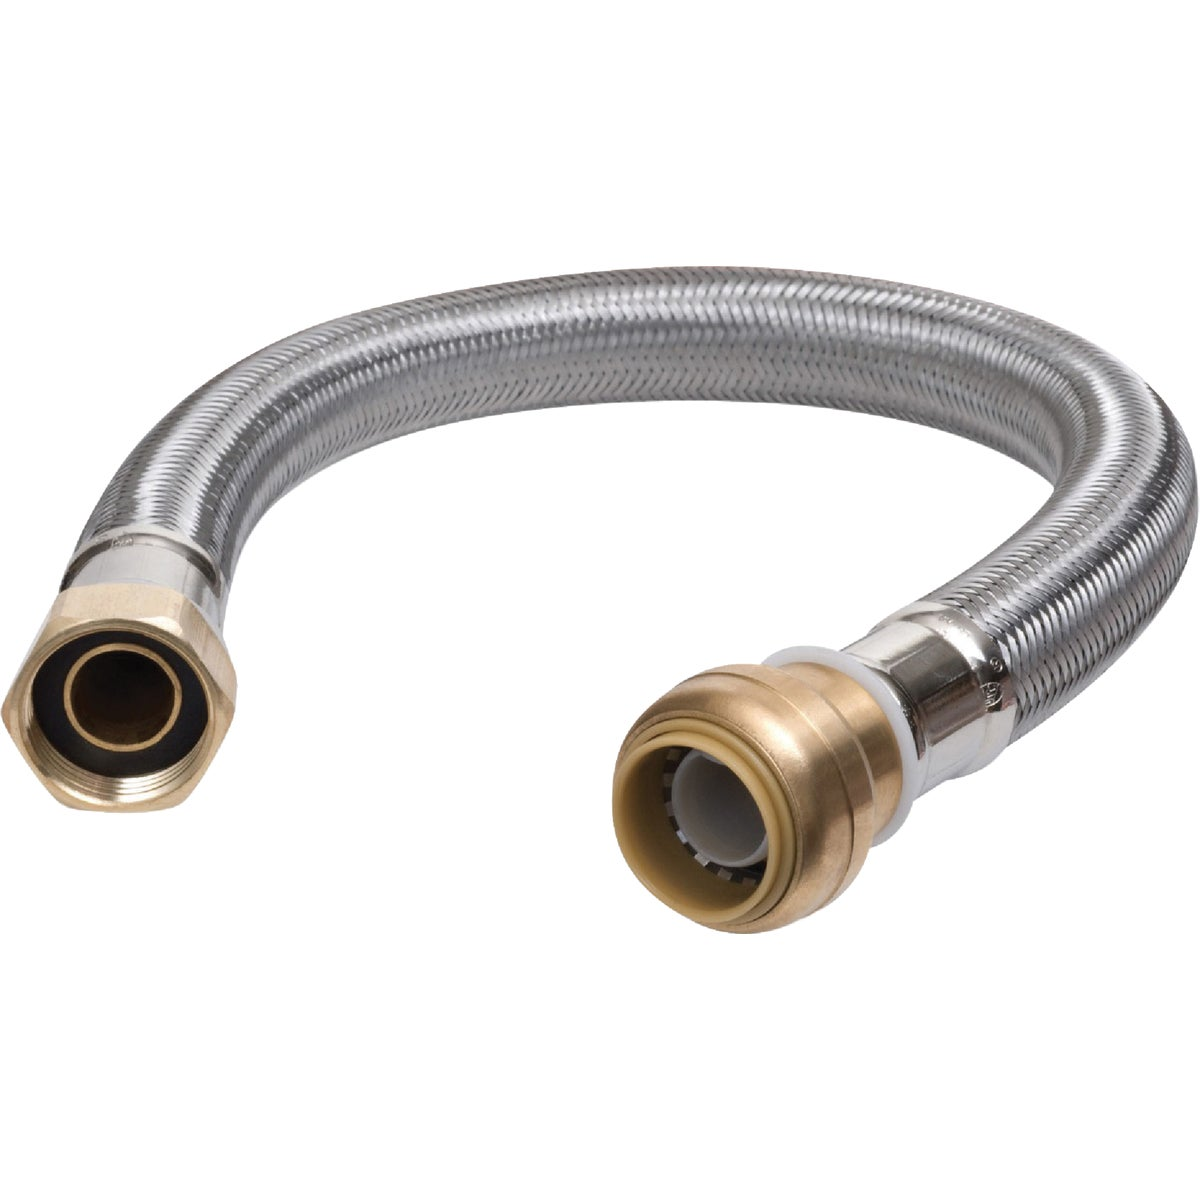 "15""SB WTR HTR CONNECTOR"